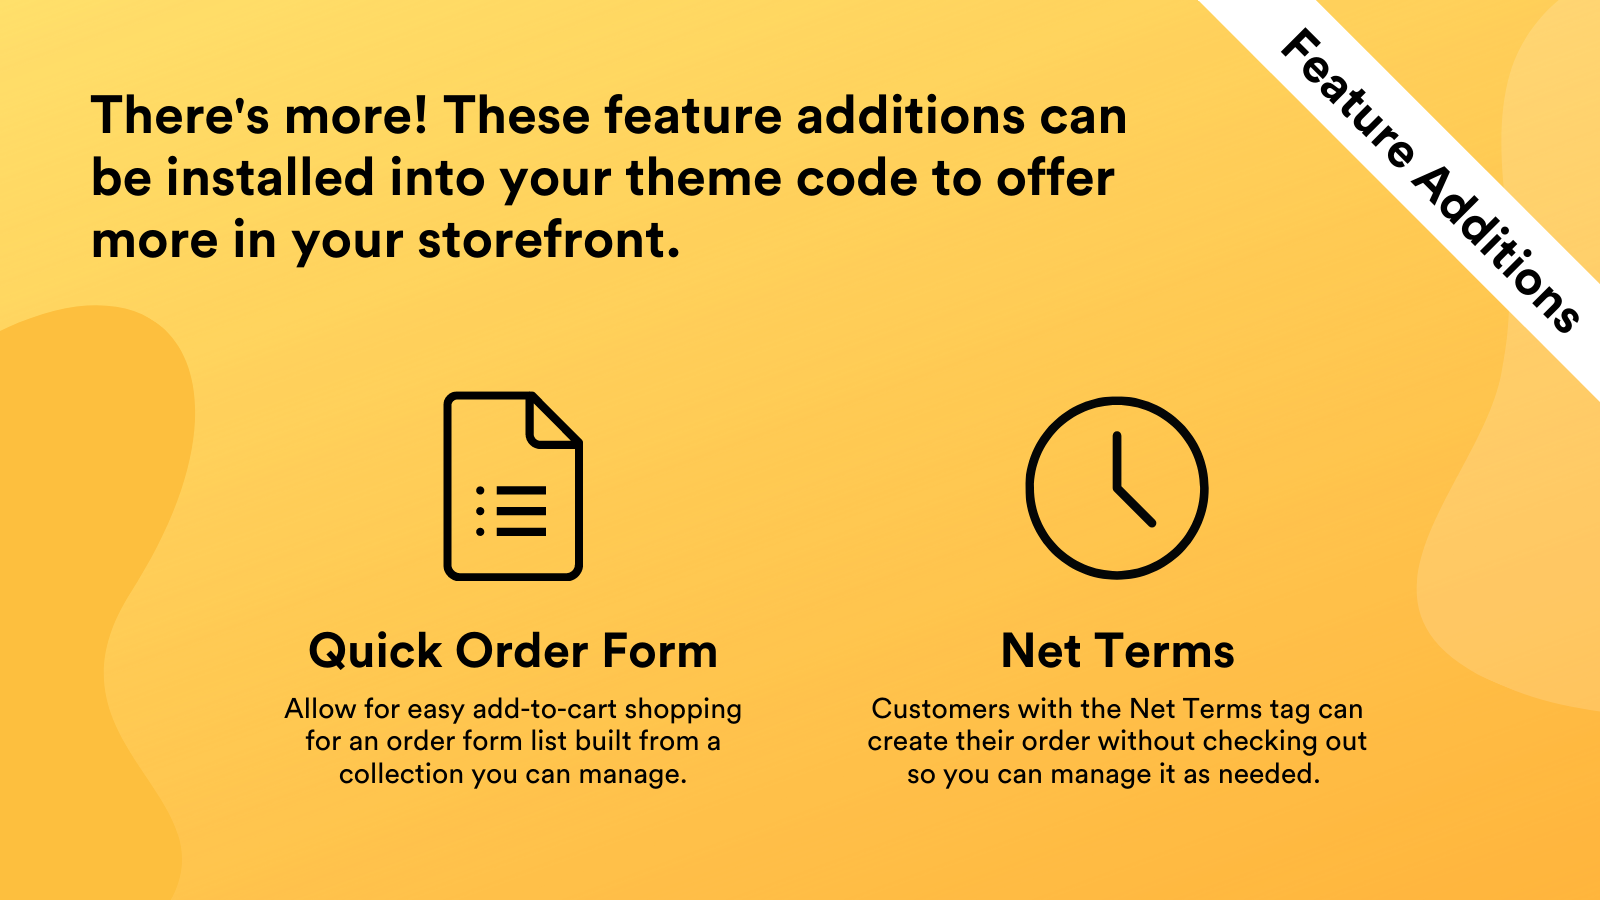 These two feature additions can be added your theme code